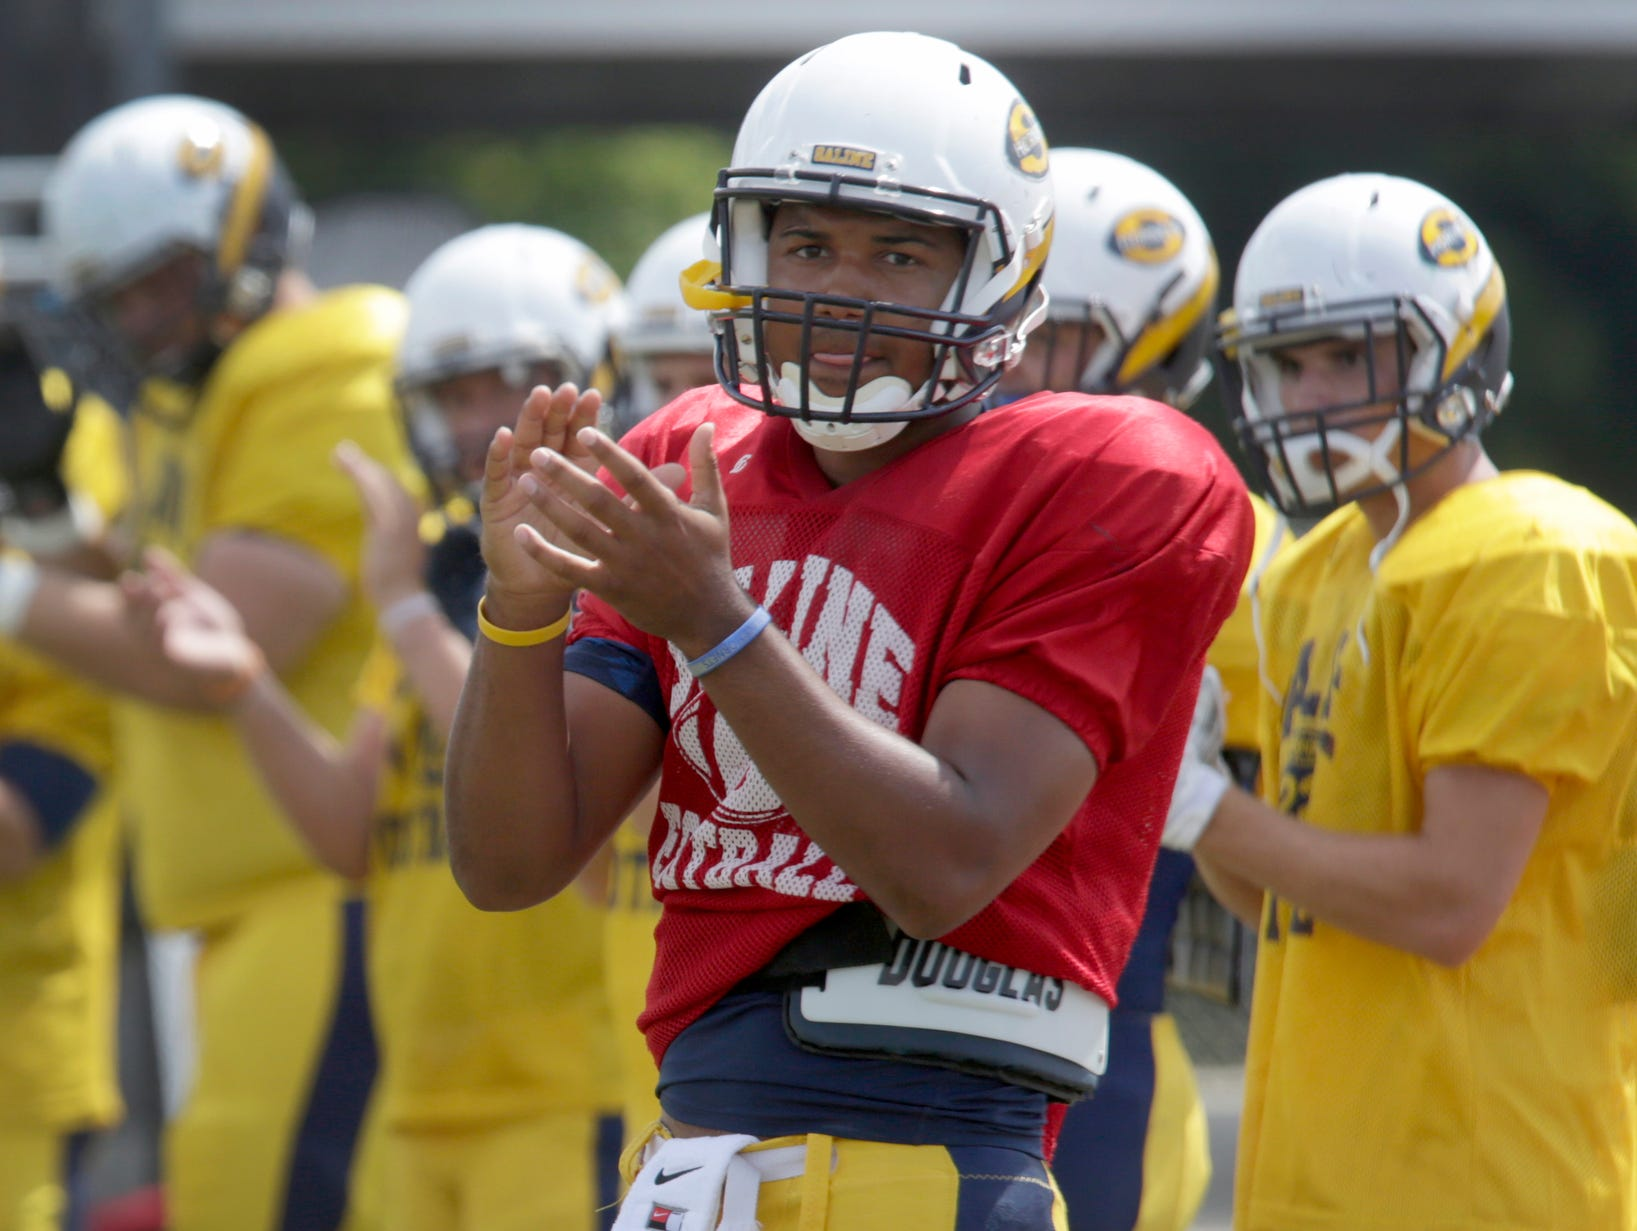 Saline quarterback Josh Jackson warms up on the field before a scrimmage against Dearborn on Aug. 20.